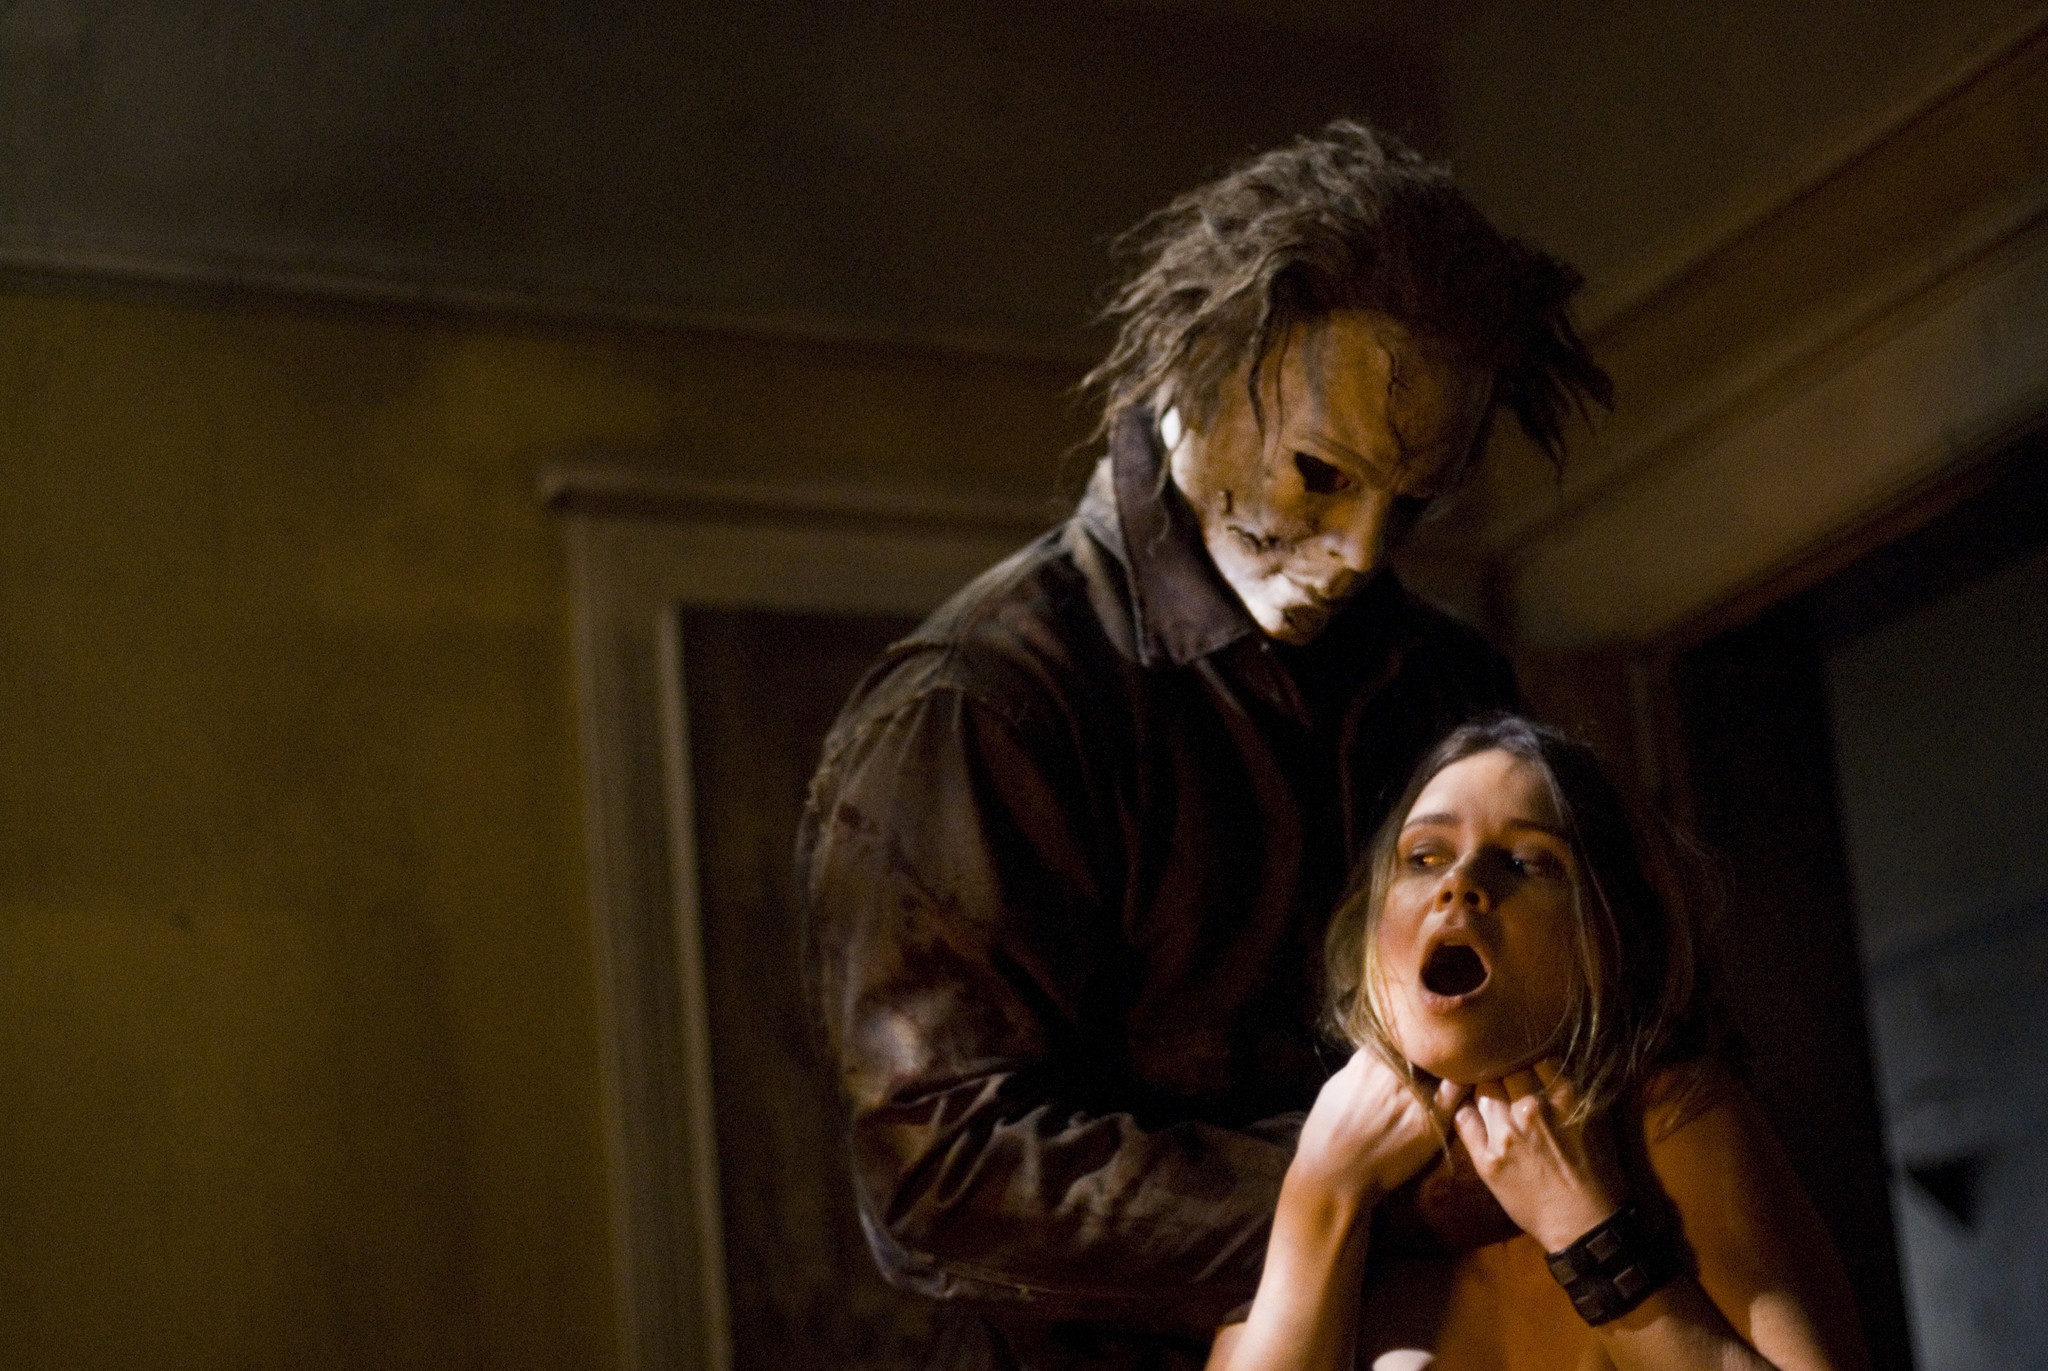 Halloween Returns': 'Saw 3D' Scribe To Direct New Michael Myers .